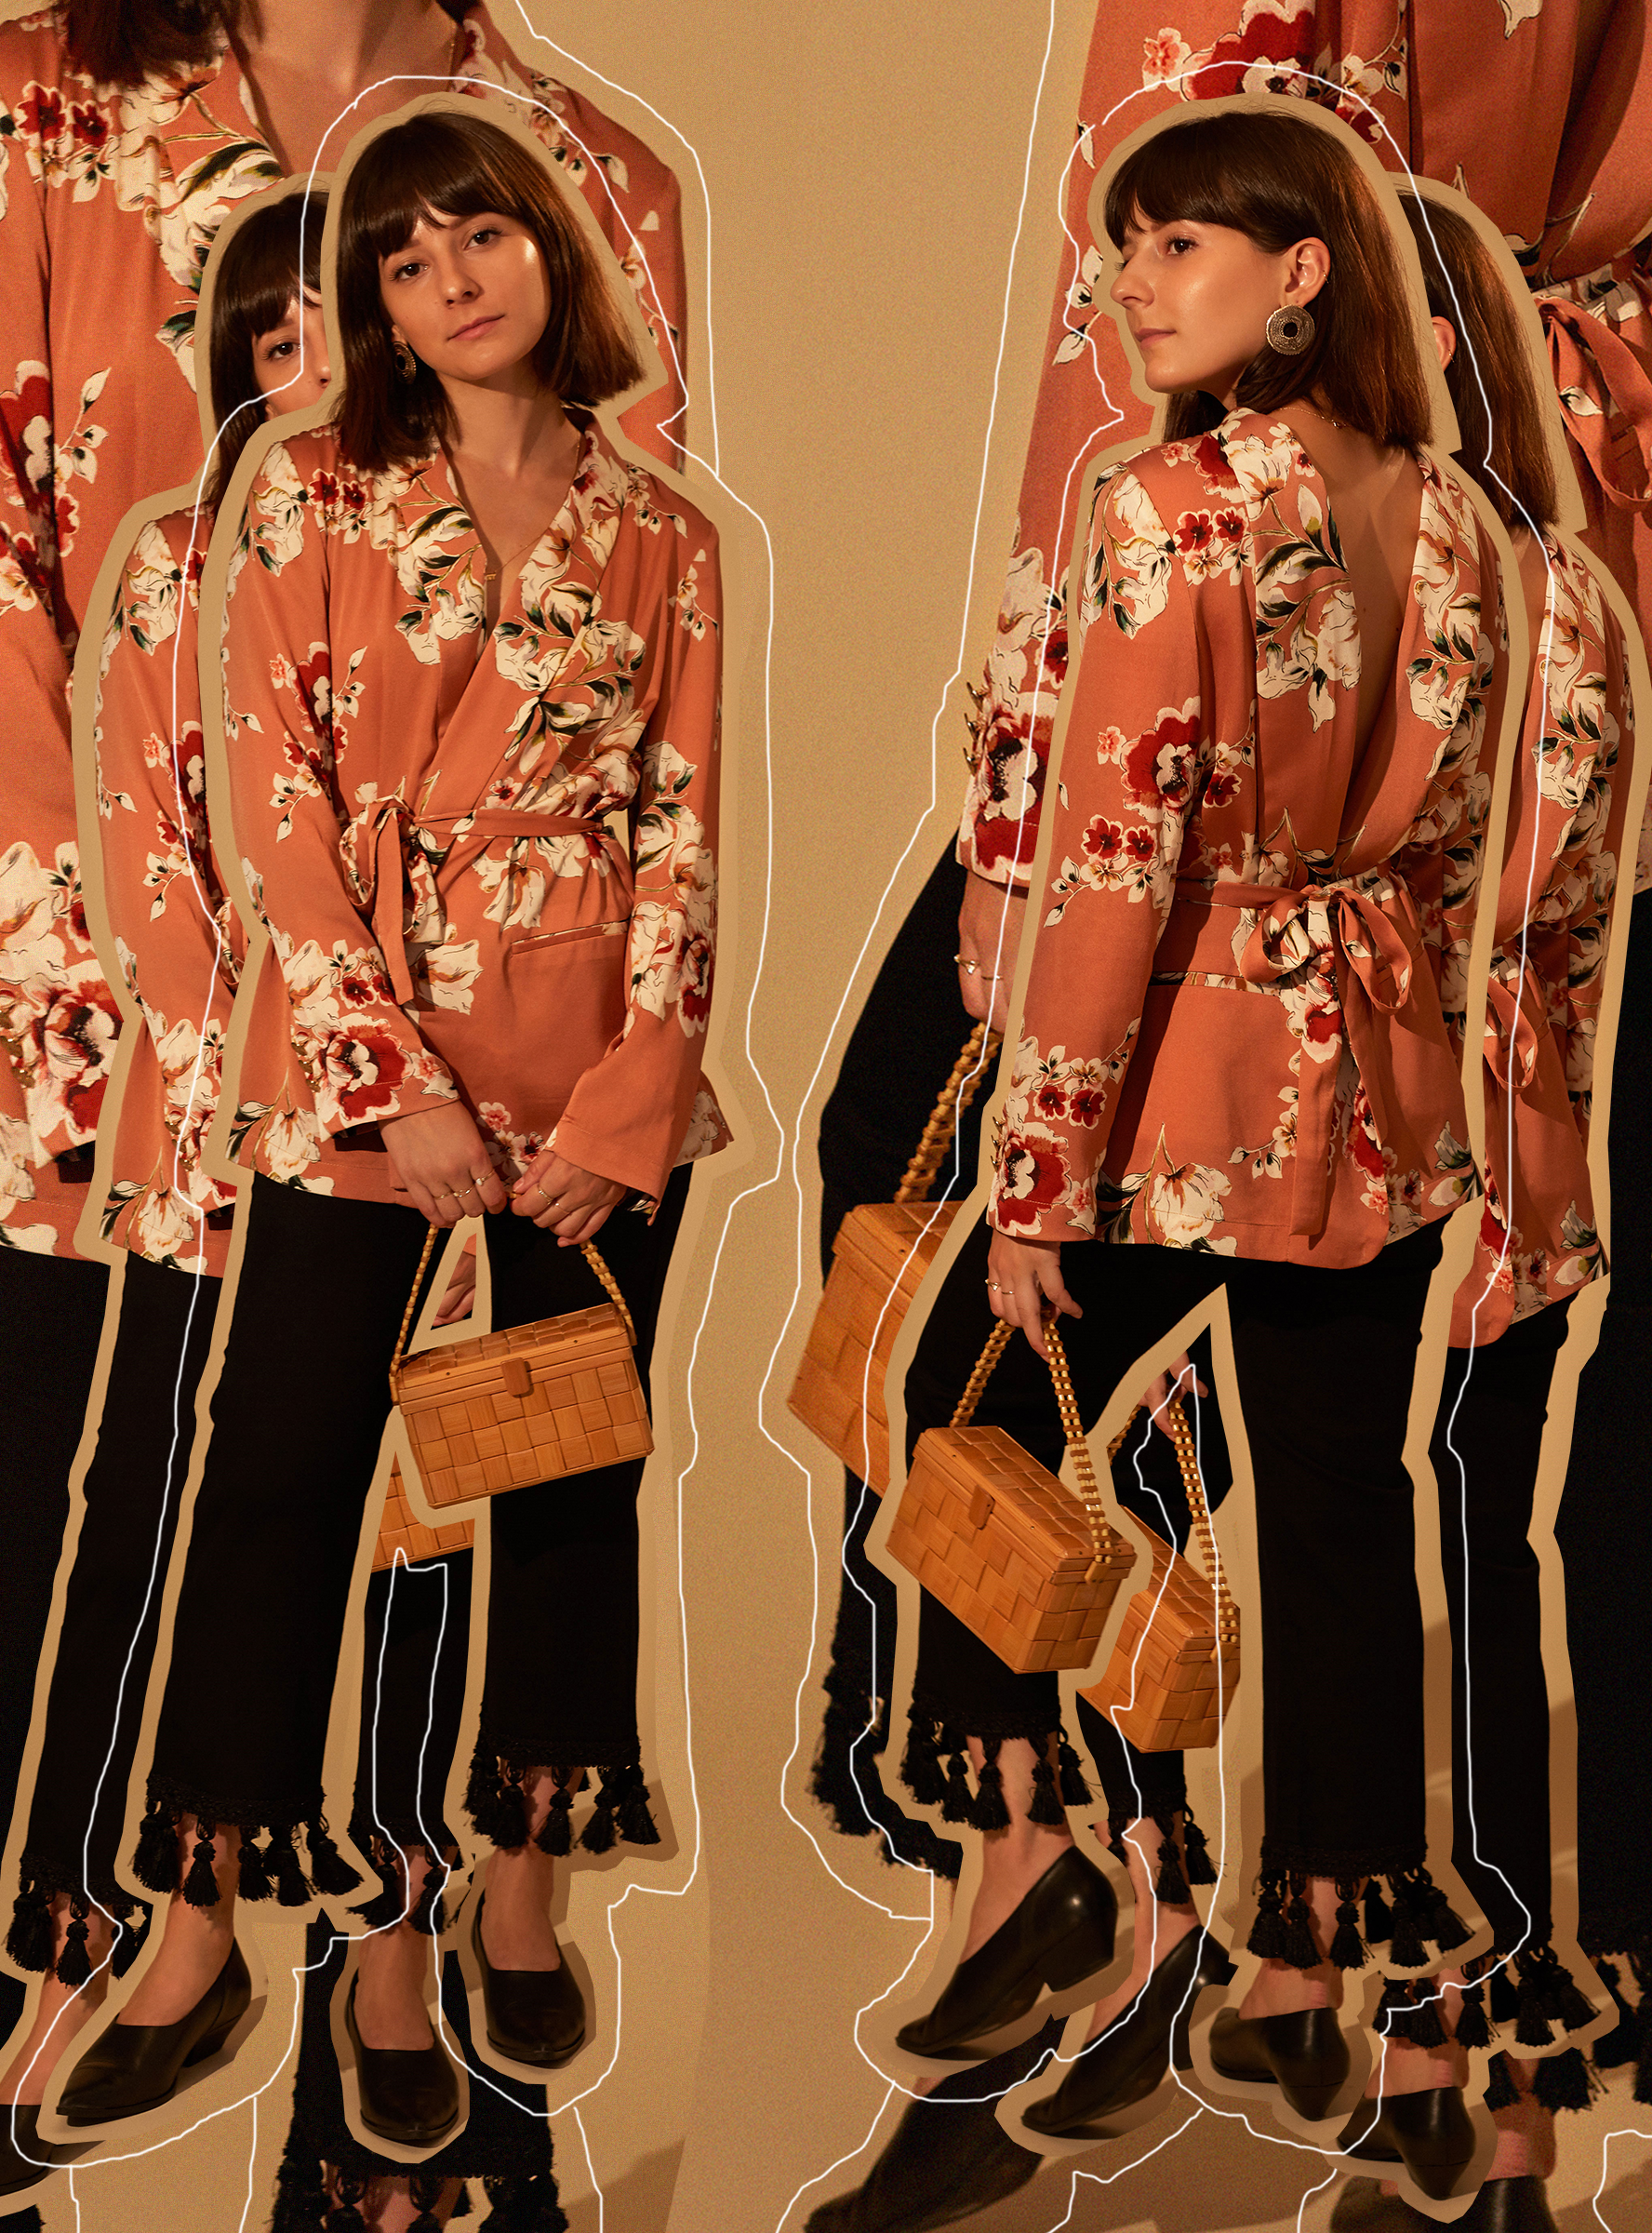 The Weird Hack We Noticed From Fashion Girls That Can Save A LOT Of Money+#refinery29